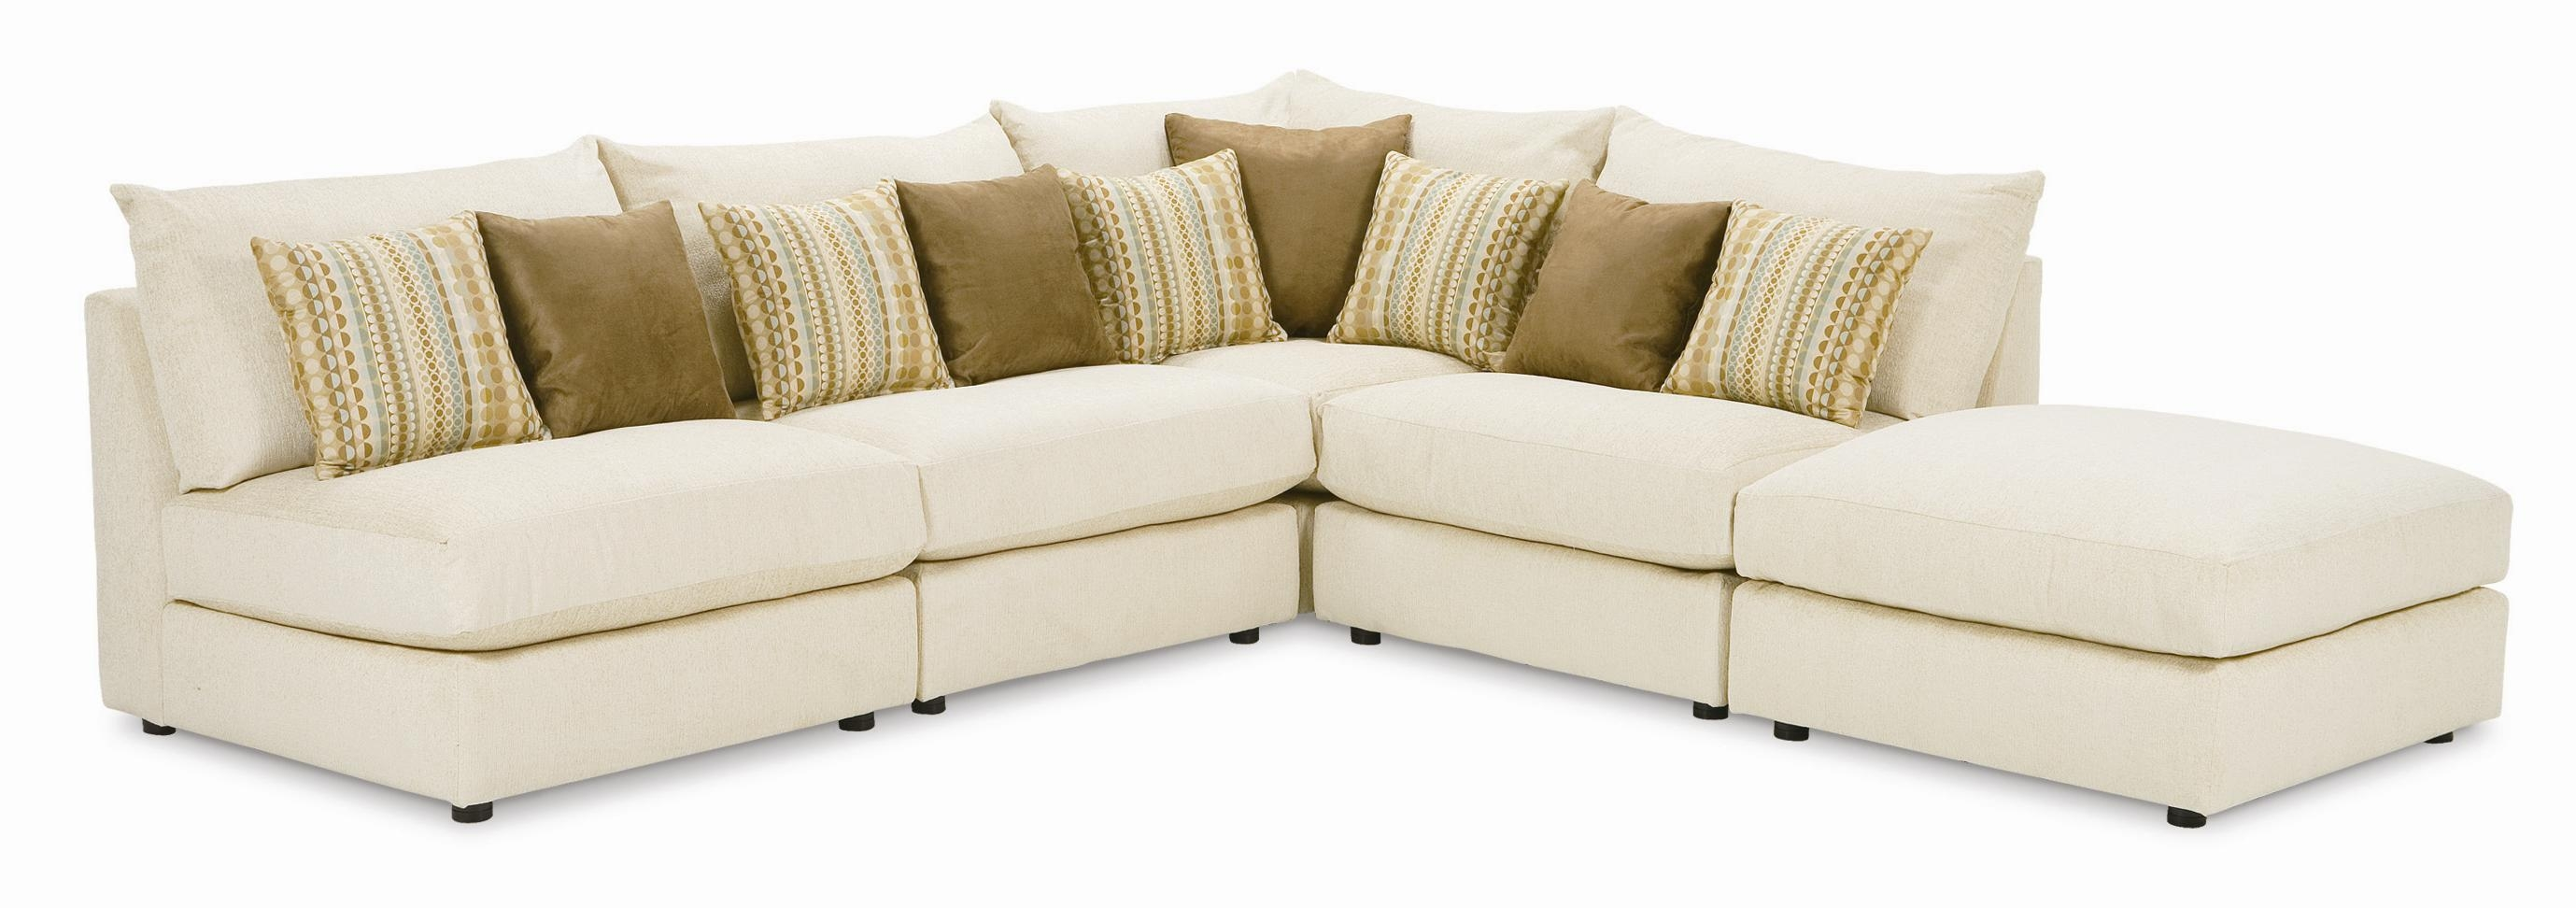 Featured Image of Armless Sectional Sofas